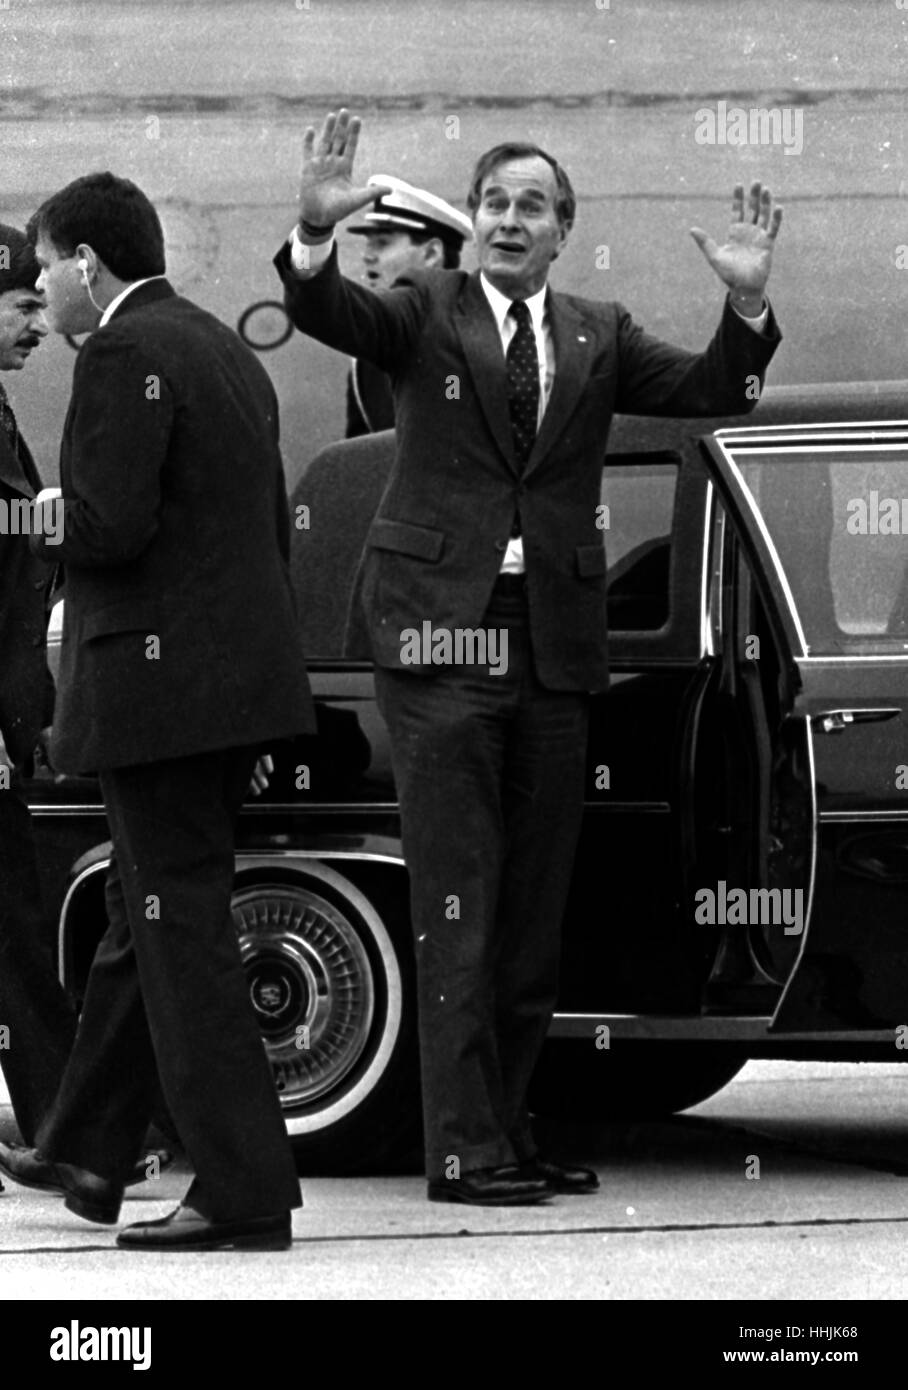 US Vice President George H Bush waves to the press being held back at Dallas' Love Field in 1984 photo by bill - Stock Image